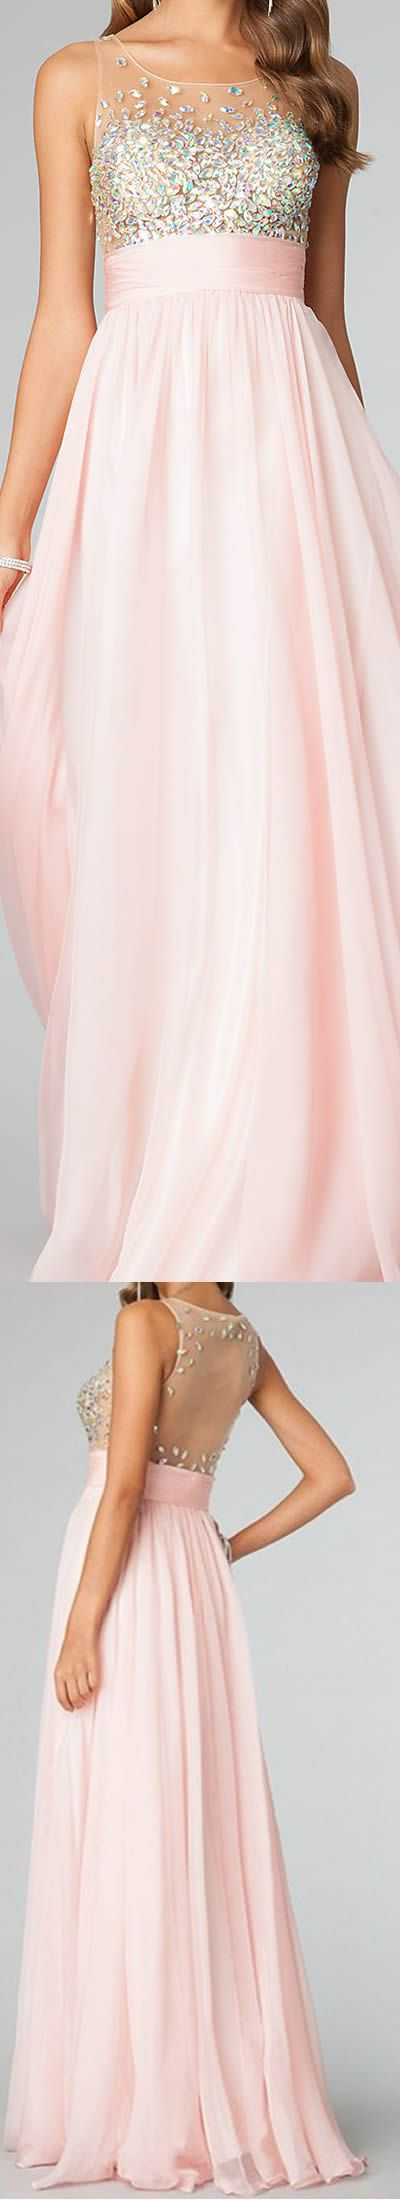 Modern Sexy Long Pink Beaded Prom Party Dresses Evening Gown, long graduation dress, cocktail dress, evening dresses, beading evening dress